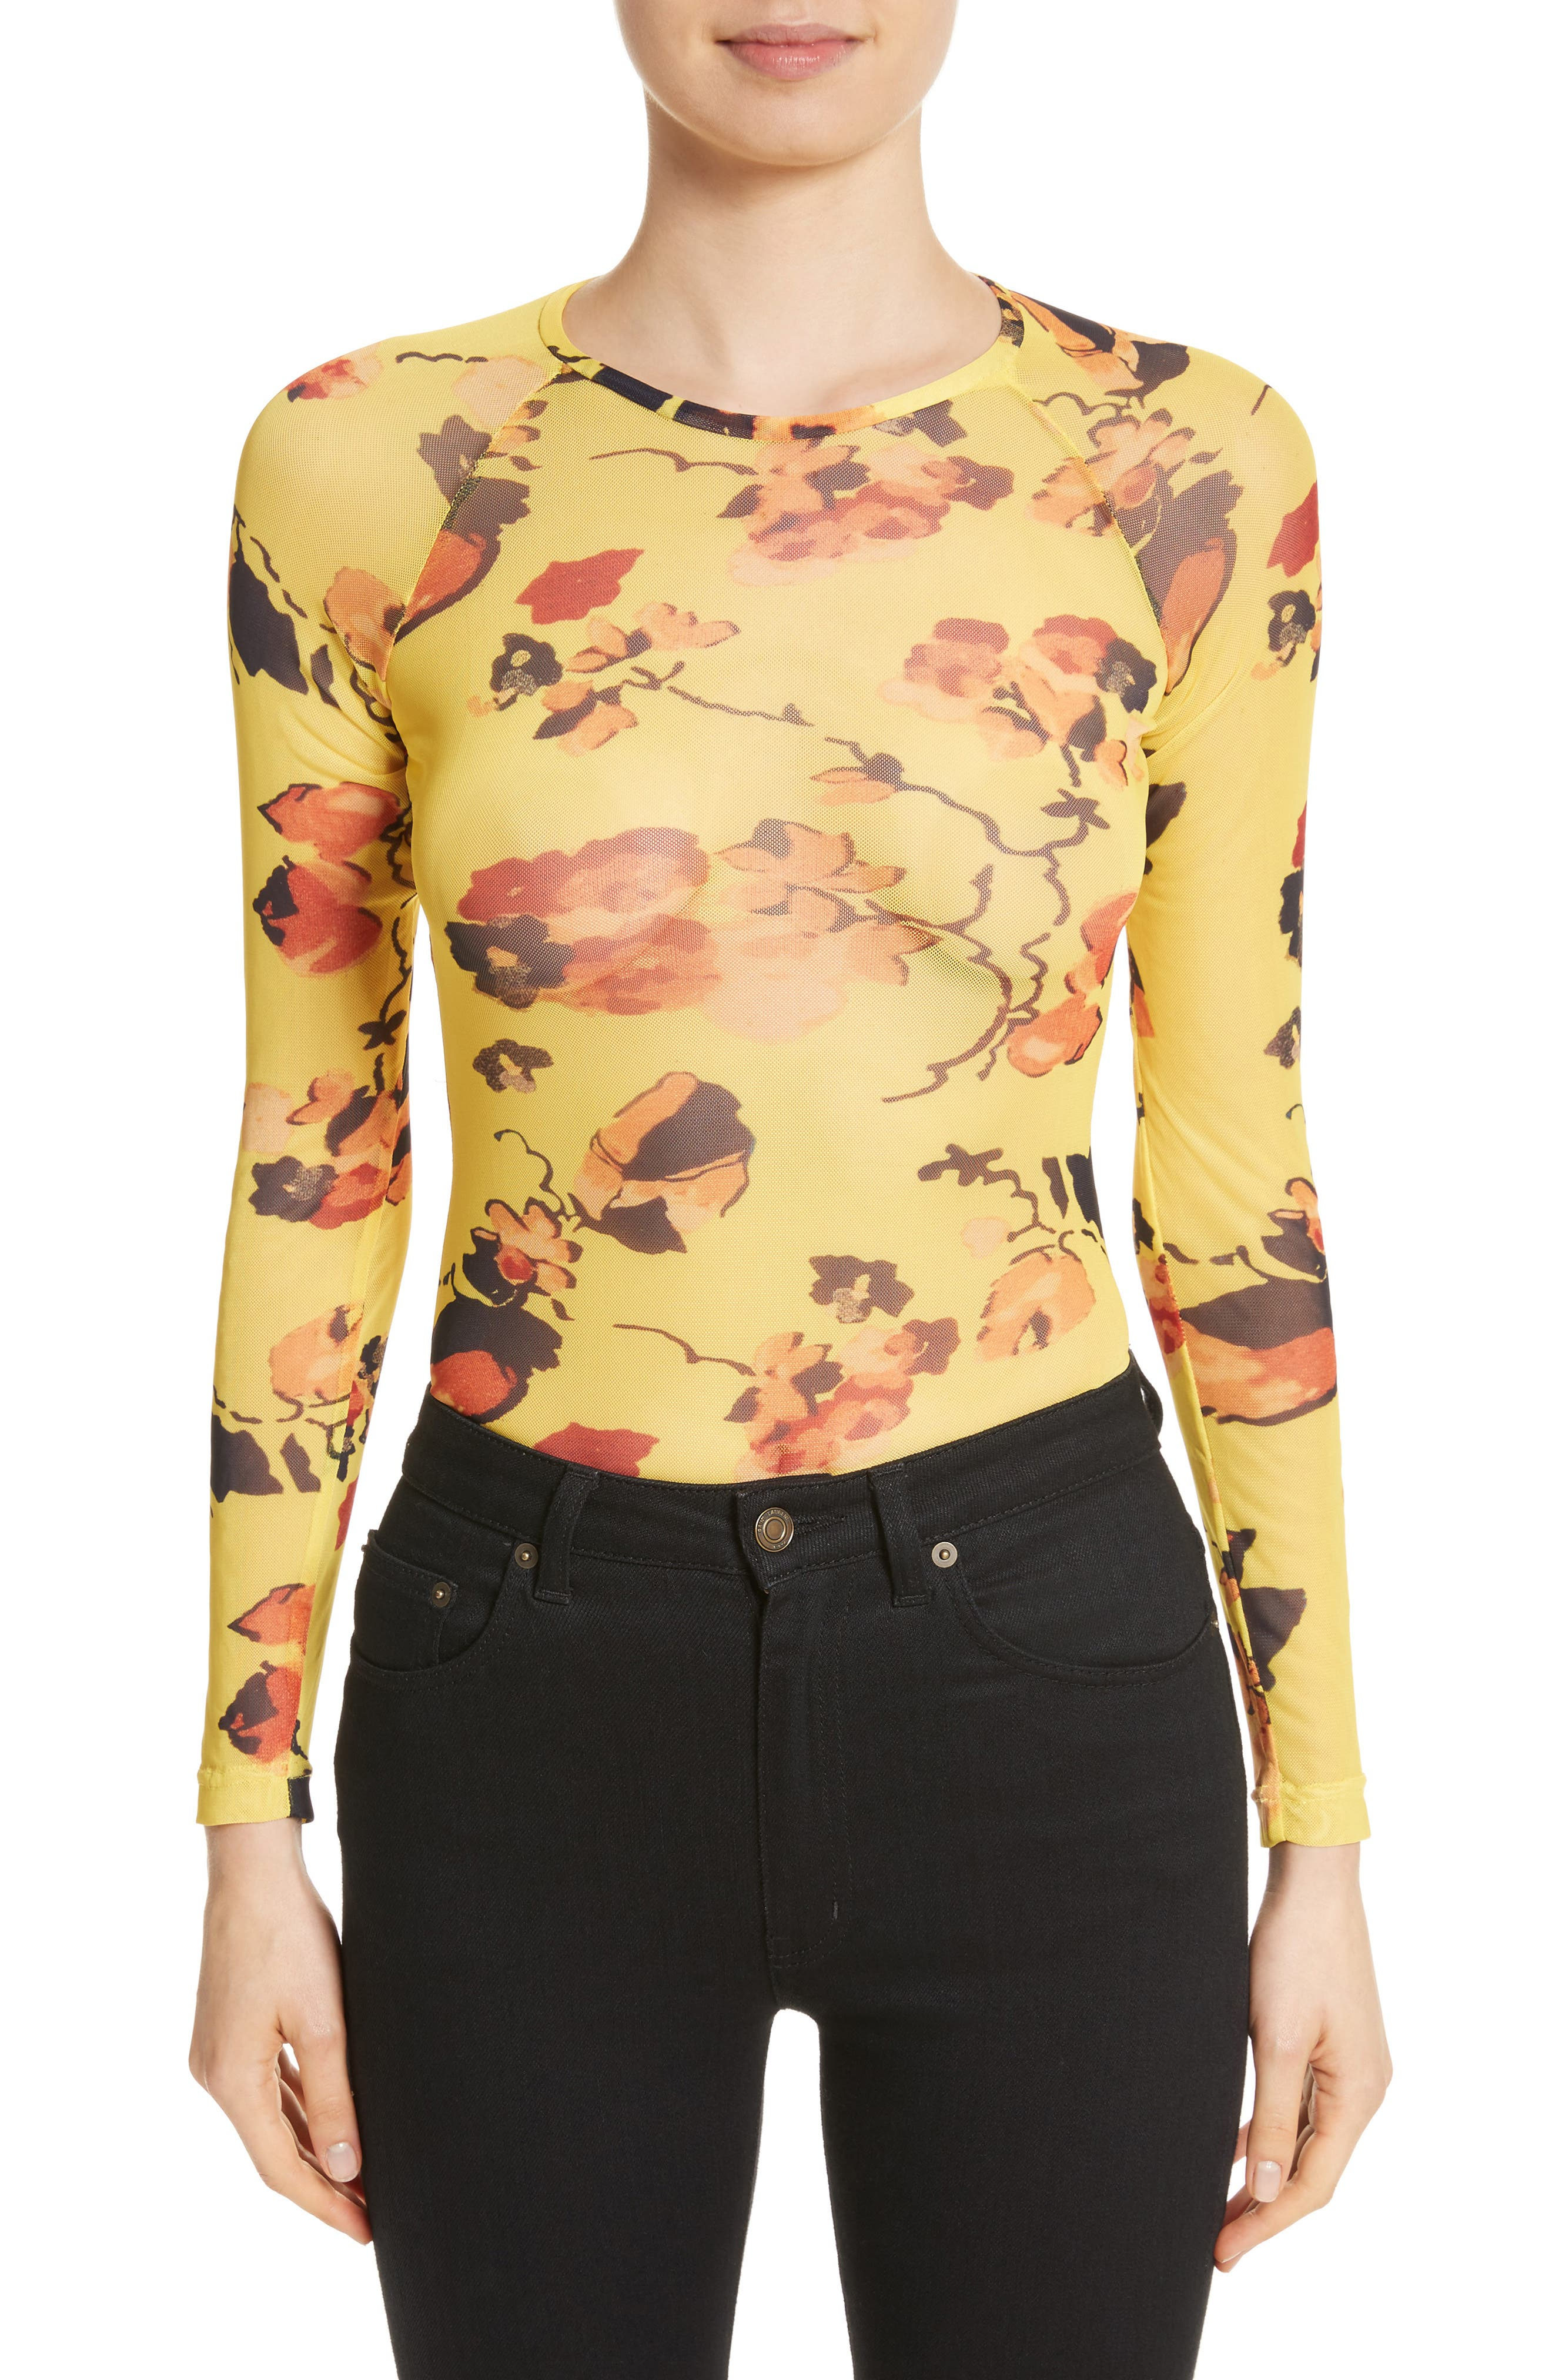 Molly Goddard Spike Floral Mesh Top